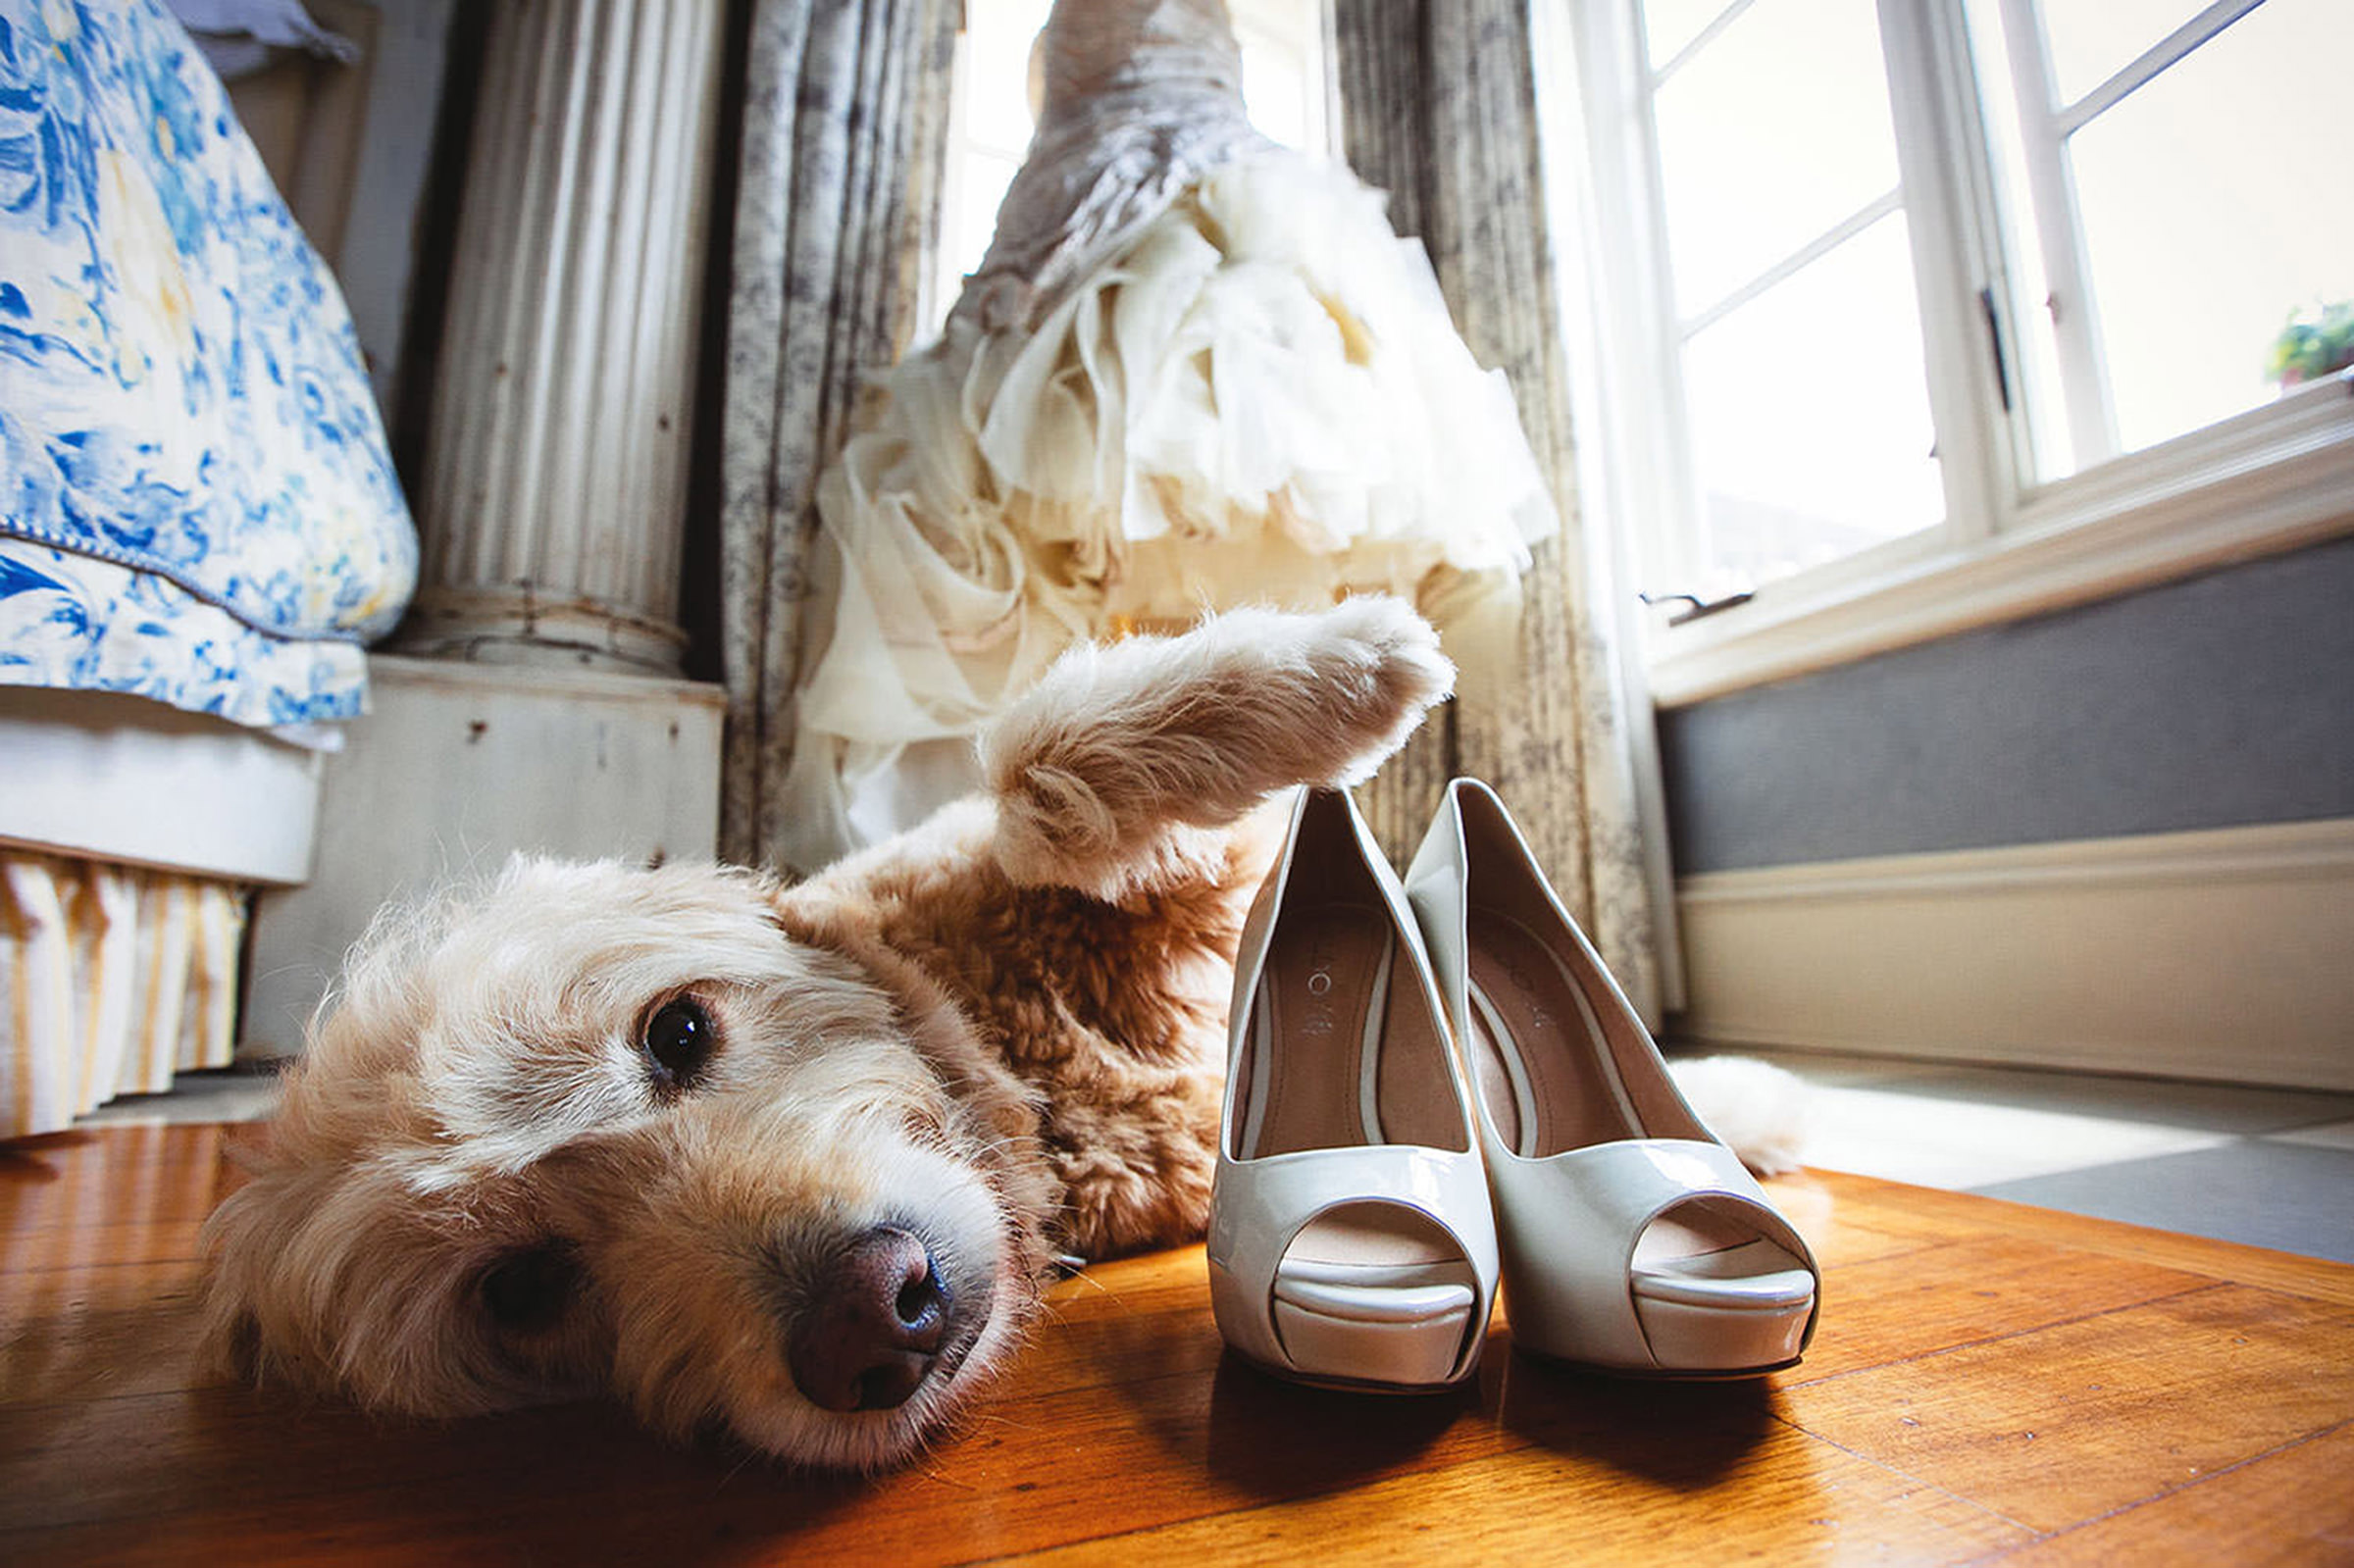 dog-show-callaway-gable-worlds-best-wedding-photos-dog-with-shoes